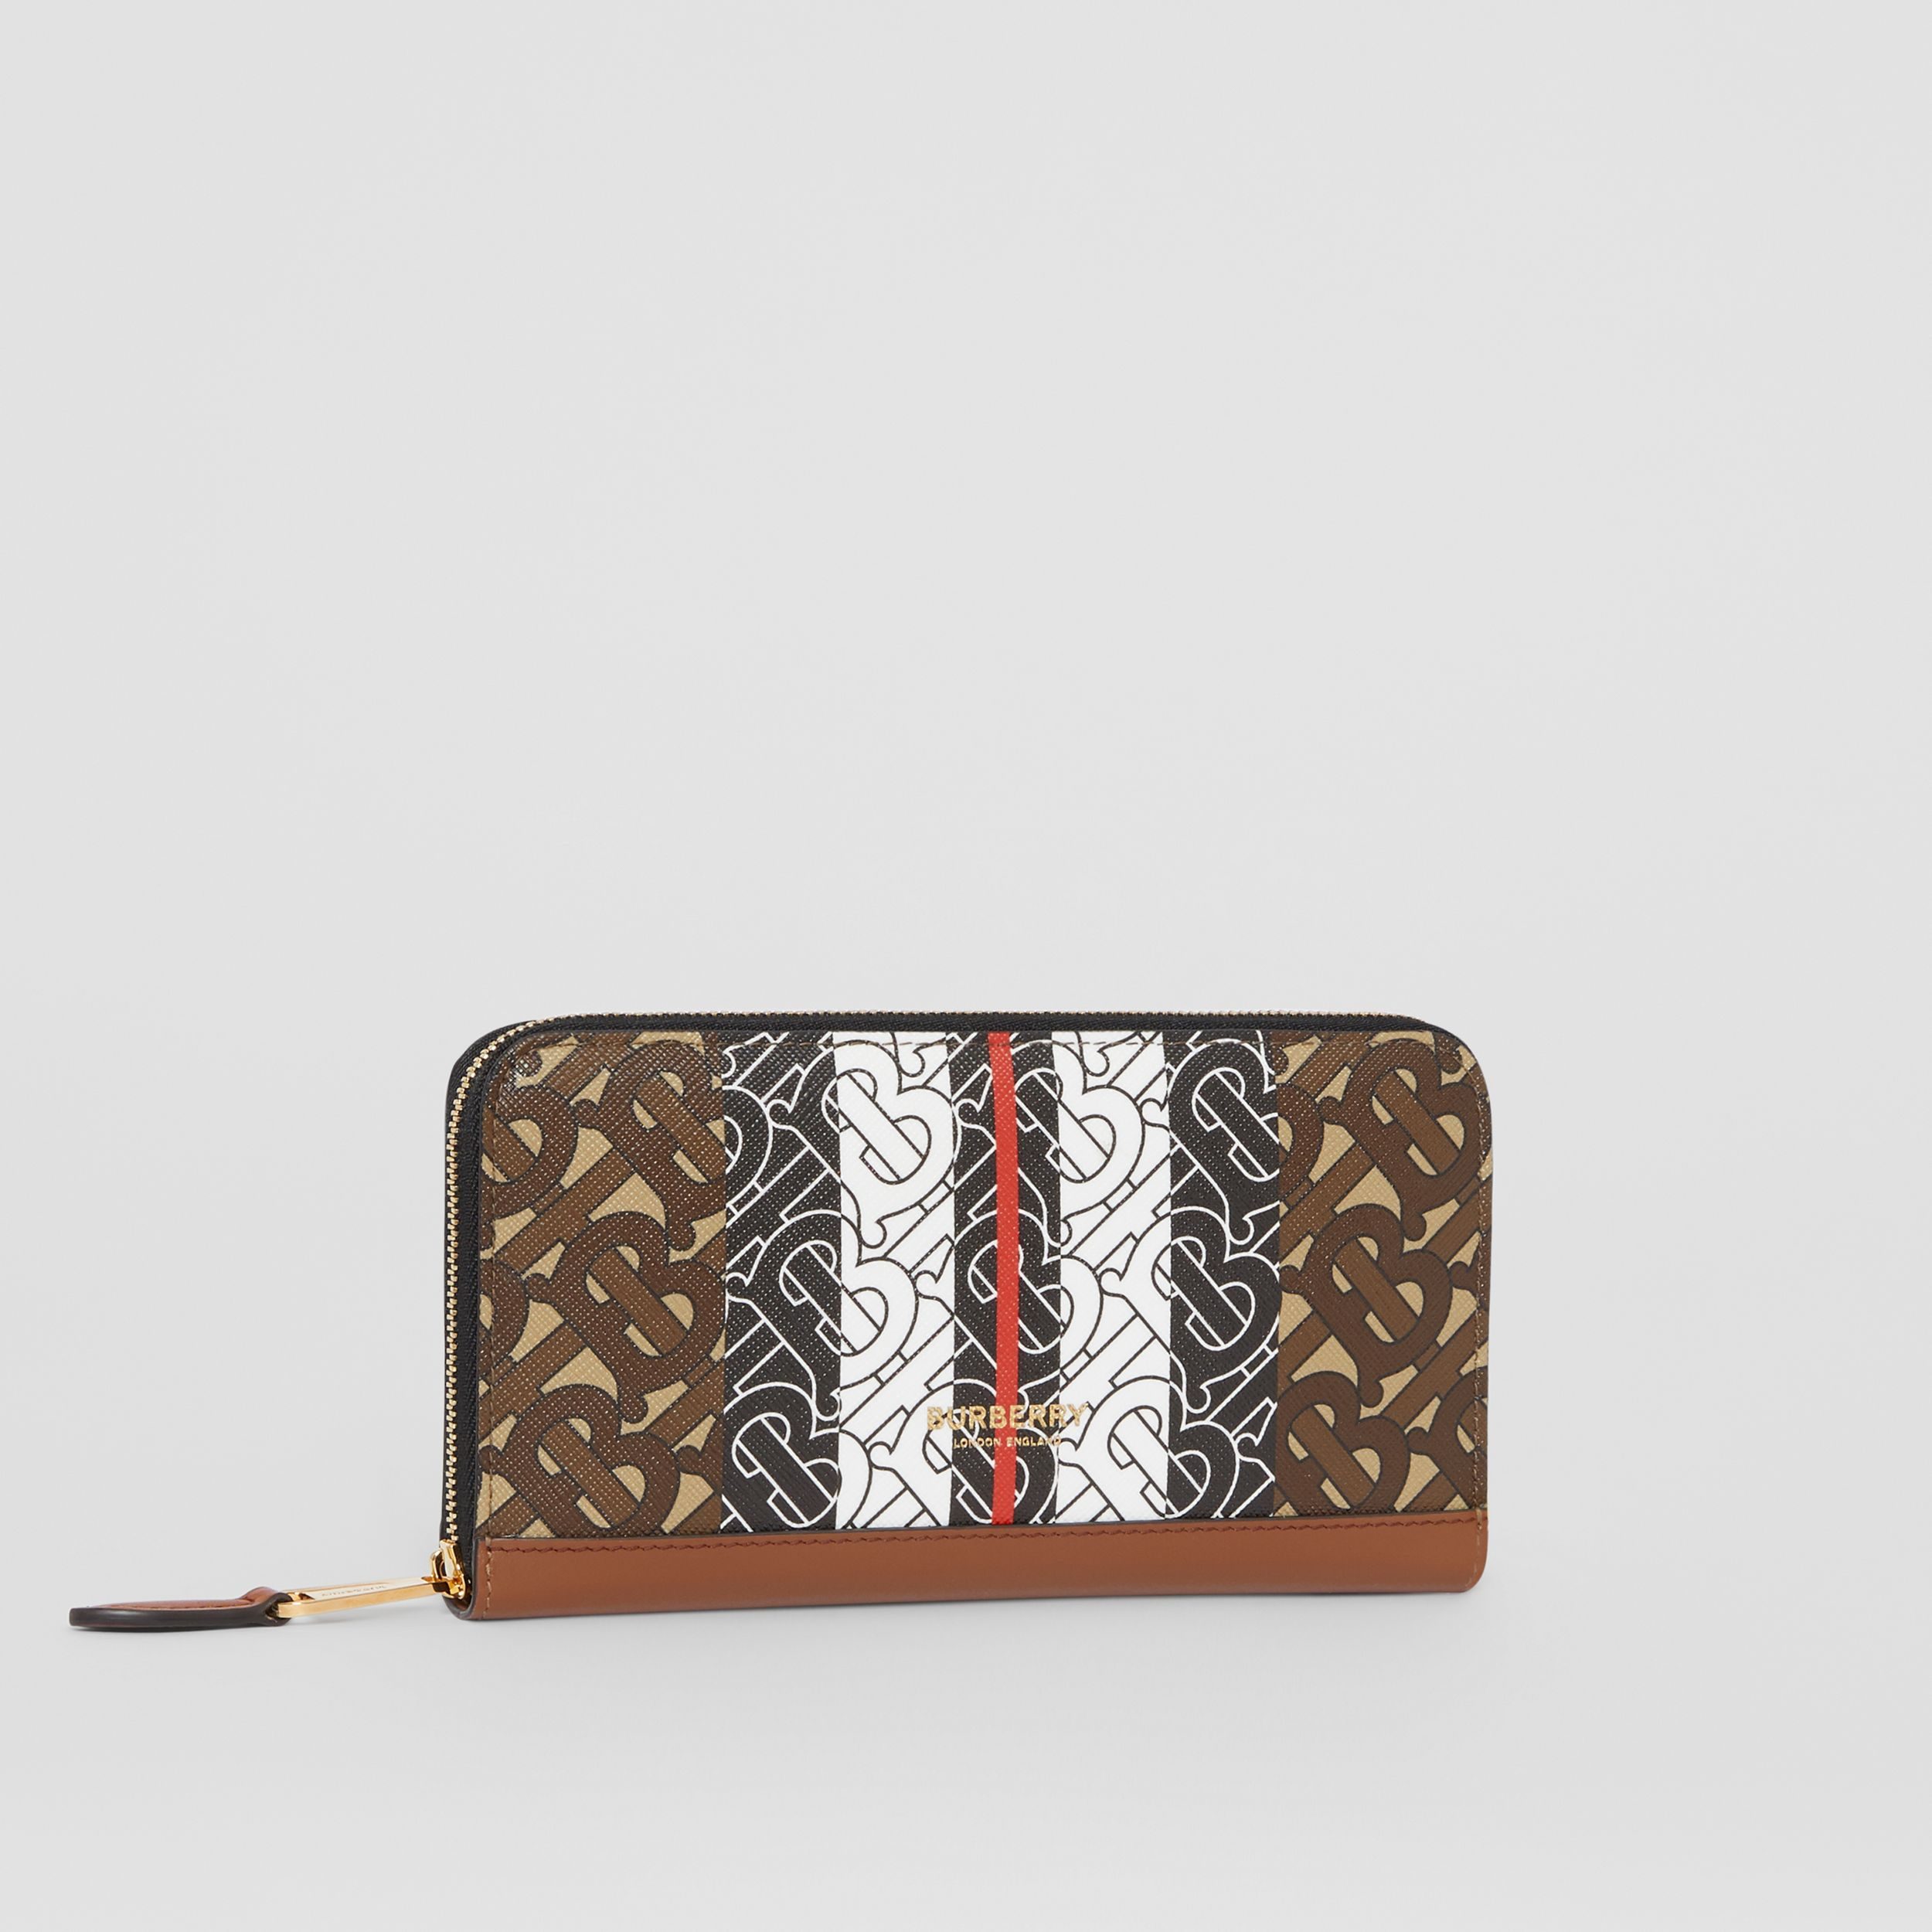 Monogram Stripe E-canvas and Leather Ziparound Wallet in Bridle Brown | Burberry - 4